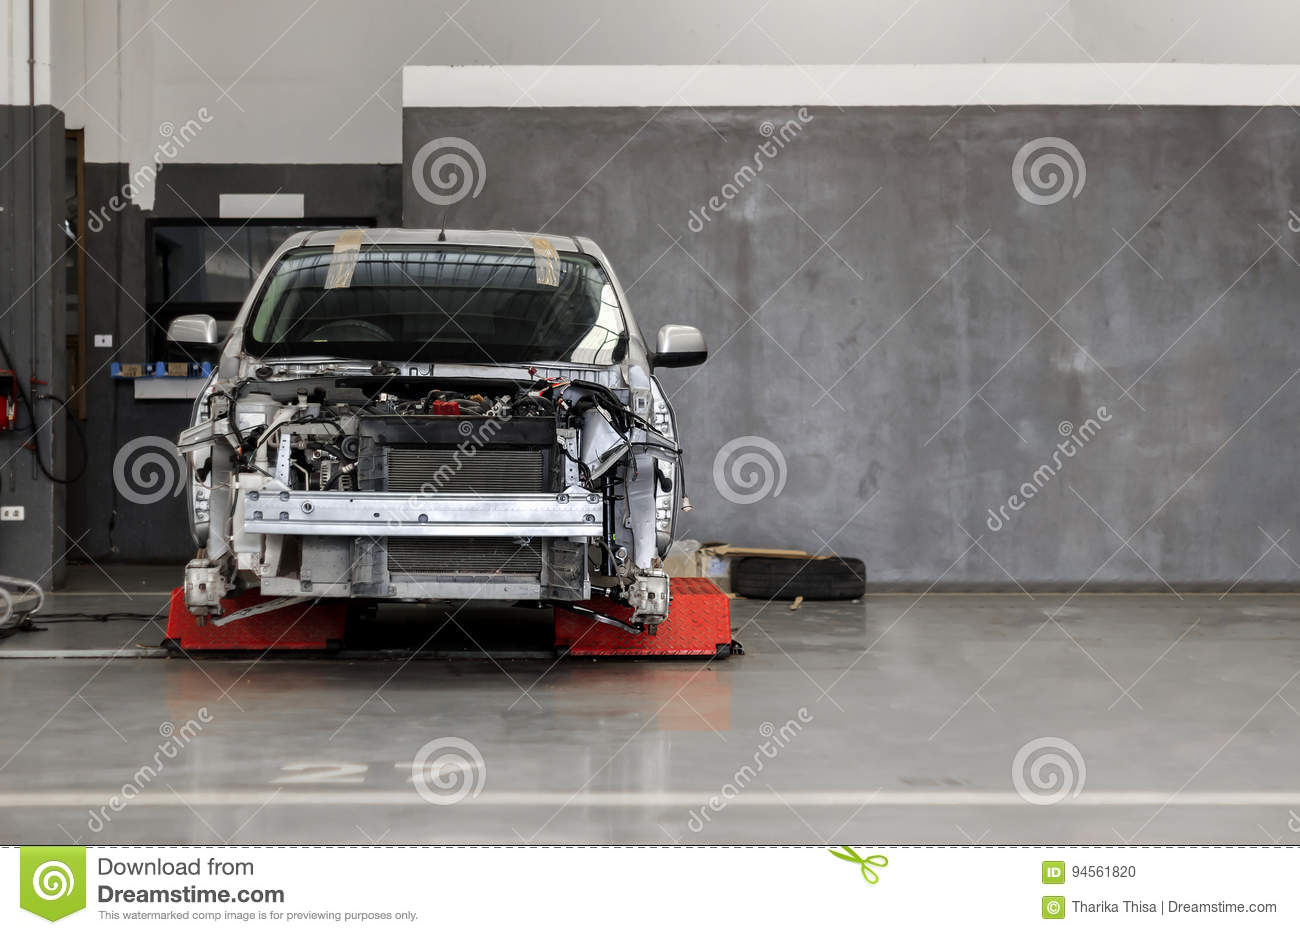 Download Car In Automobile Repair Service Center Stock Photo   Image Of  Motion, Maintenance: